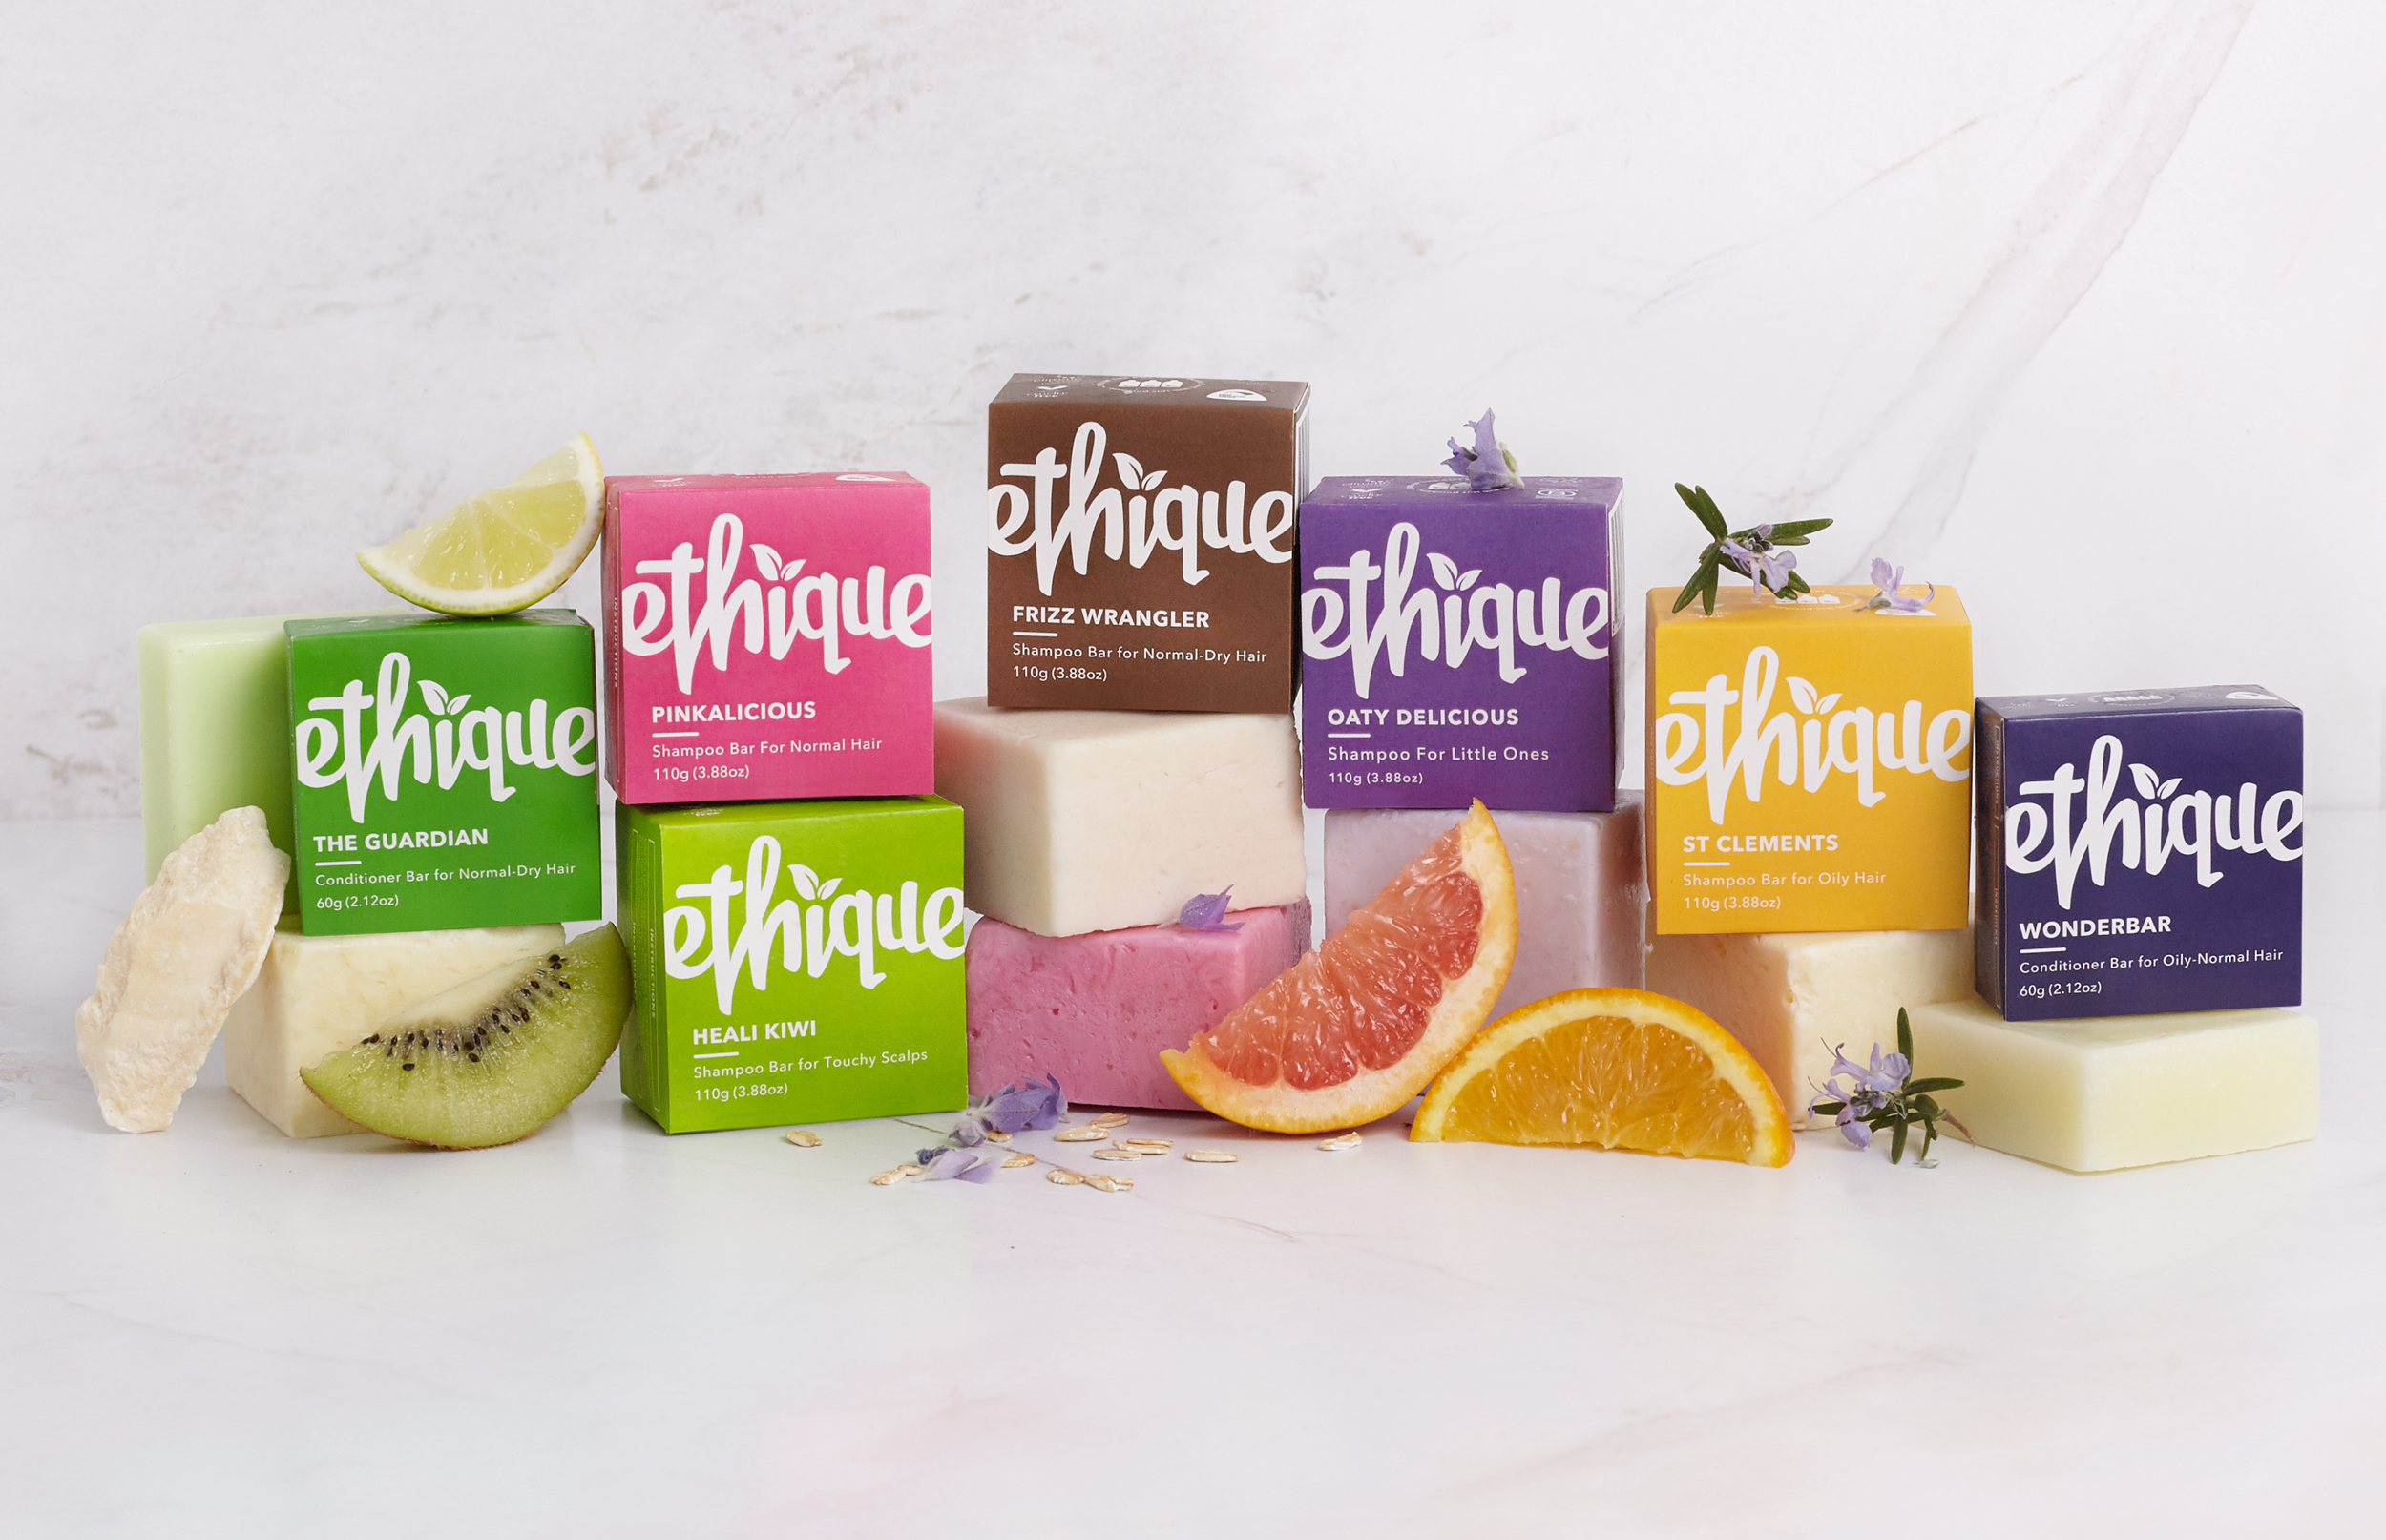 ethique-hair-care-zero-waste-vegan-beauty-bars